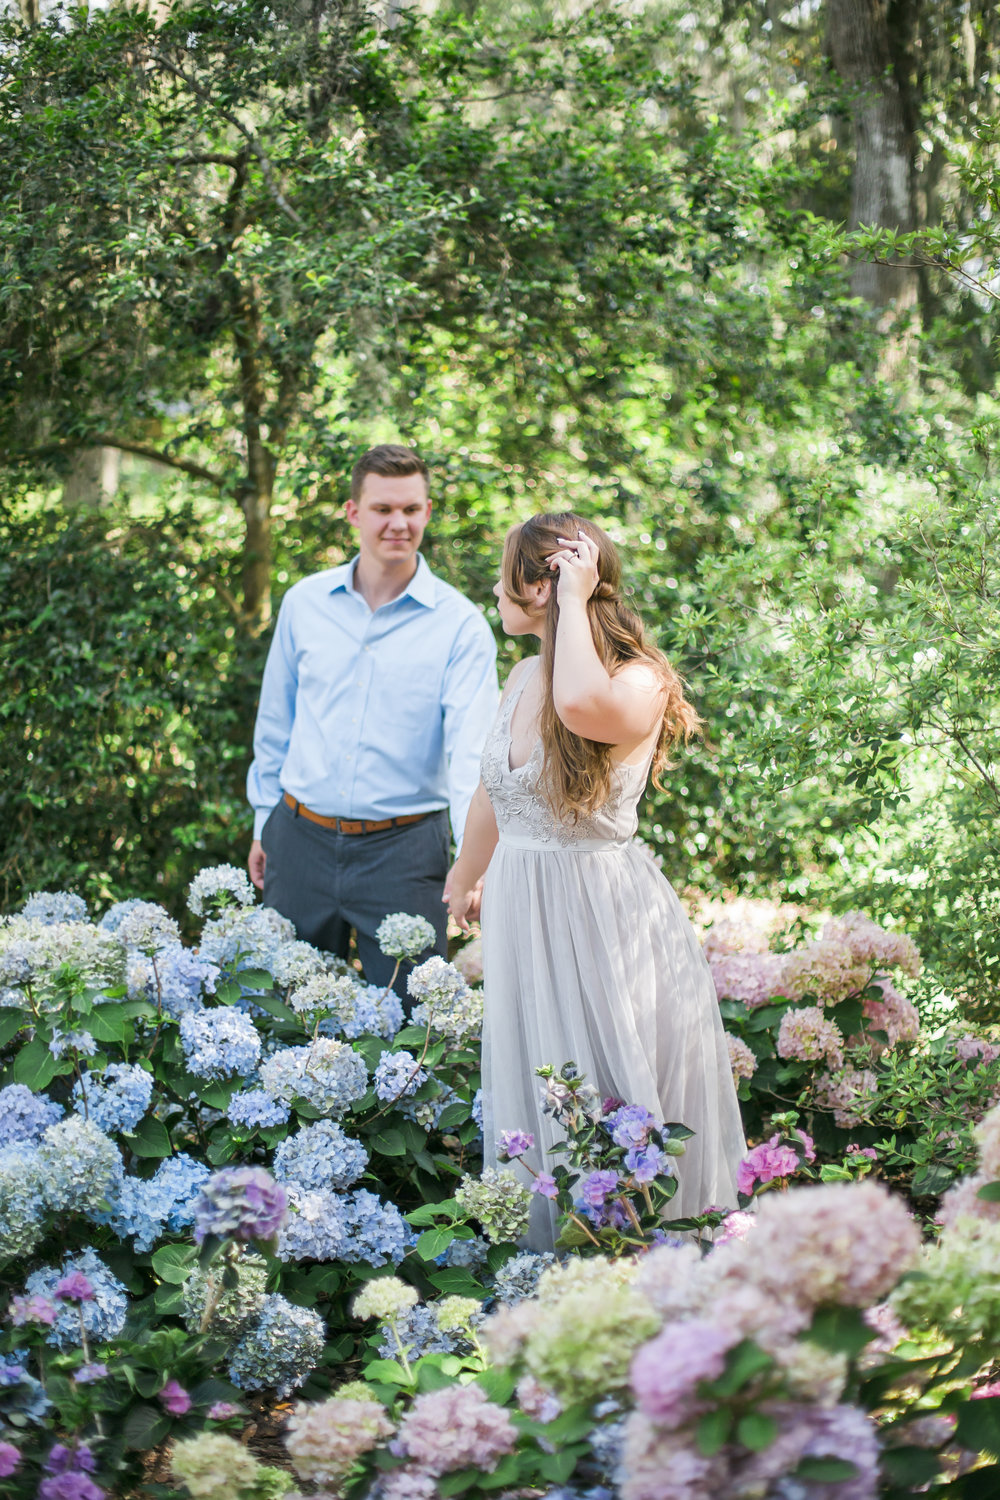 Scarlett + Derek - Bok Tower Gardens Wedding Photographer - Bok Tower Gardens Engagement Session - Preview Photos - Emily & Co. Photography (42).jpg